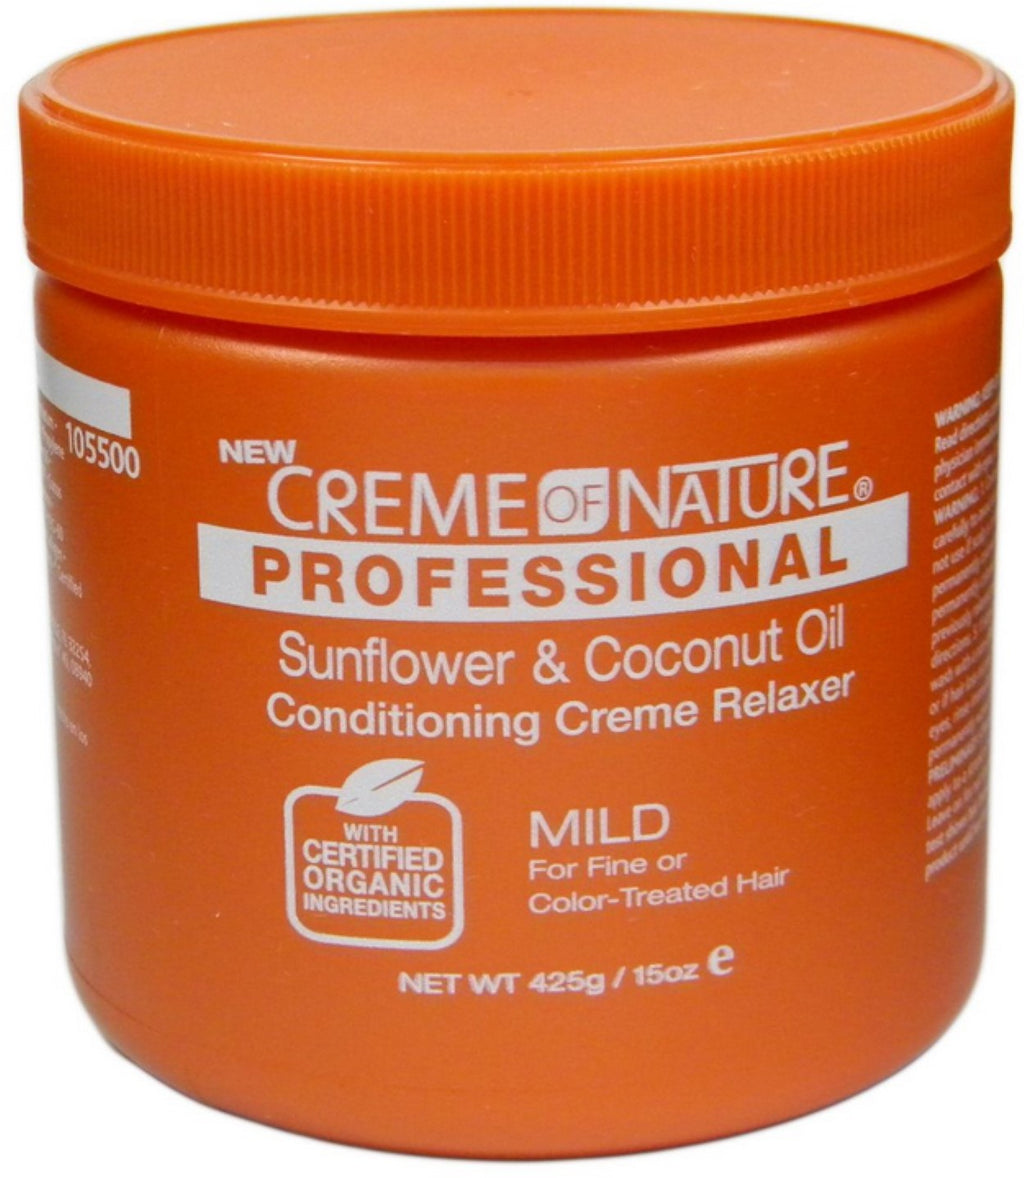 Creme Of Nature Professional Sunflower & Coconut Oil Conditioning Creme Relaxer 15 oz